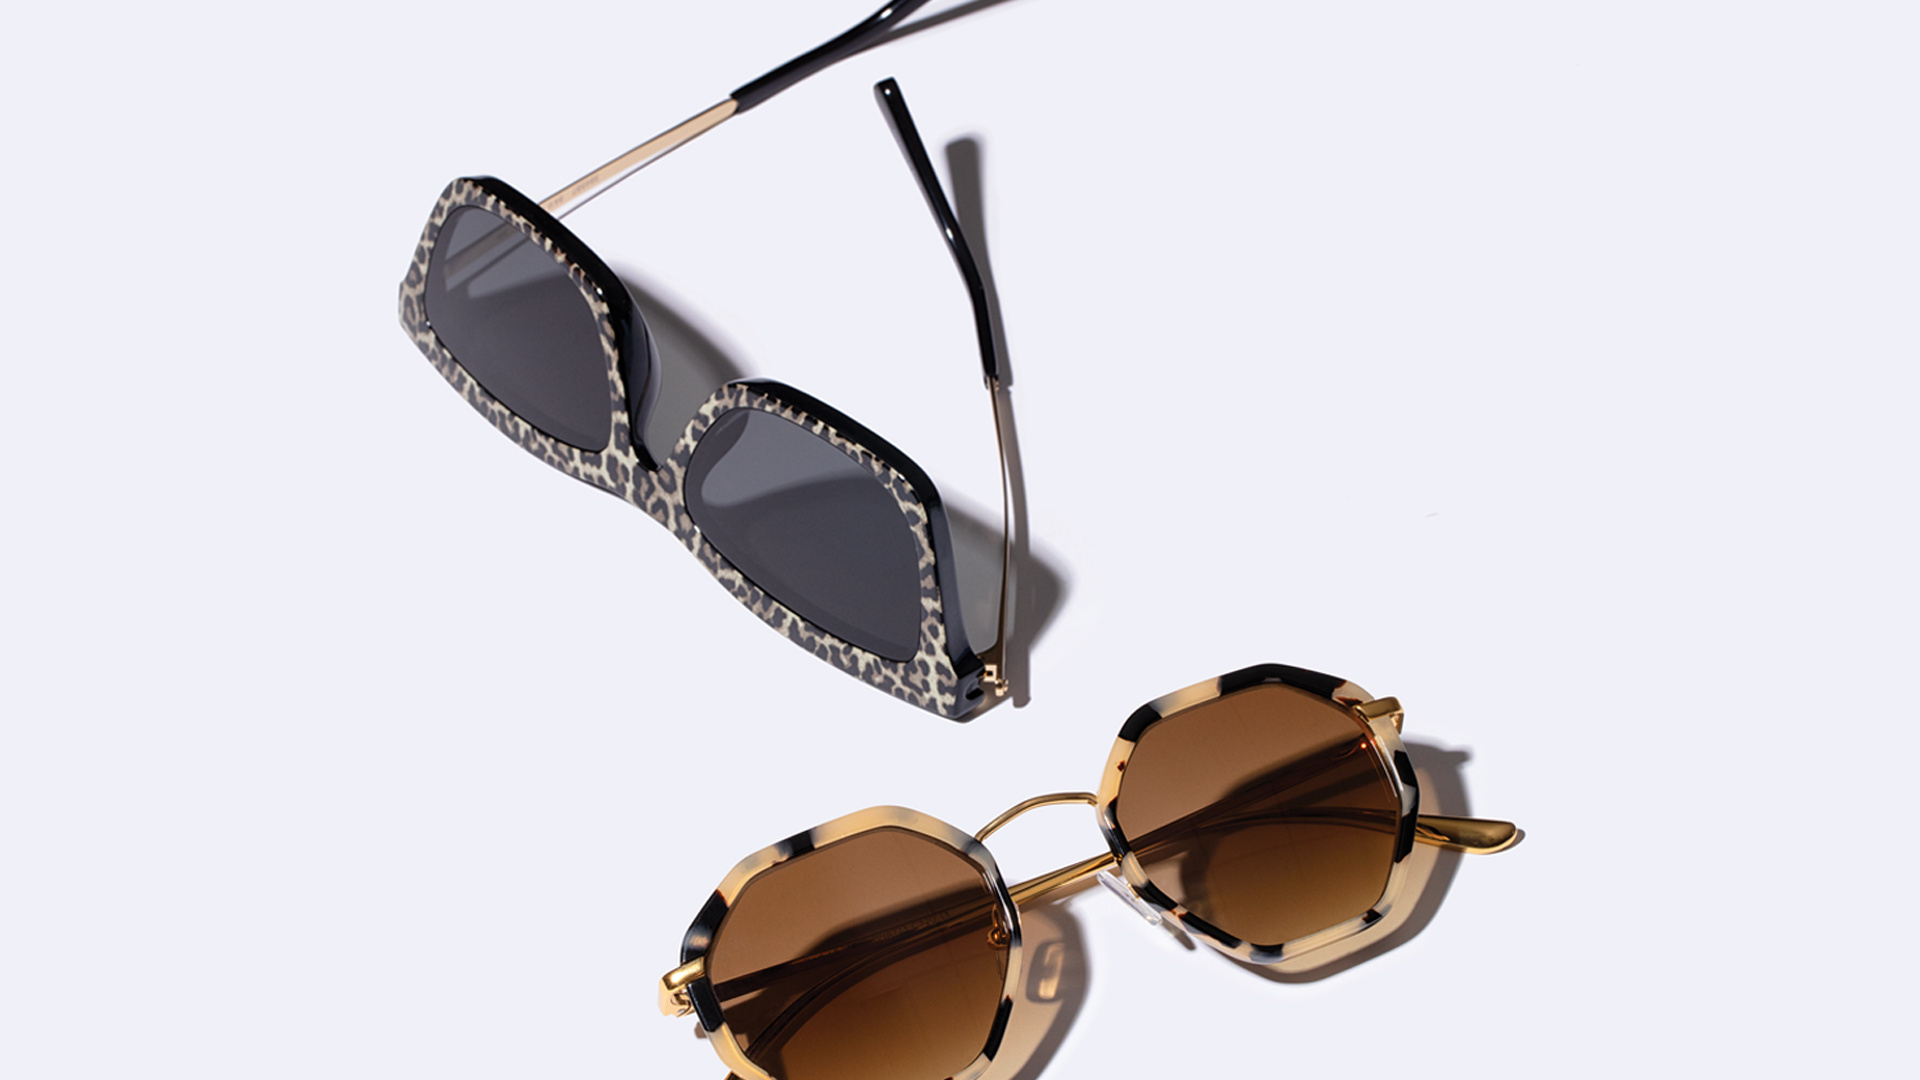 Polarized, cute and sporty sunglasses